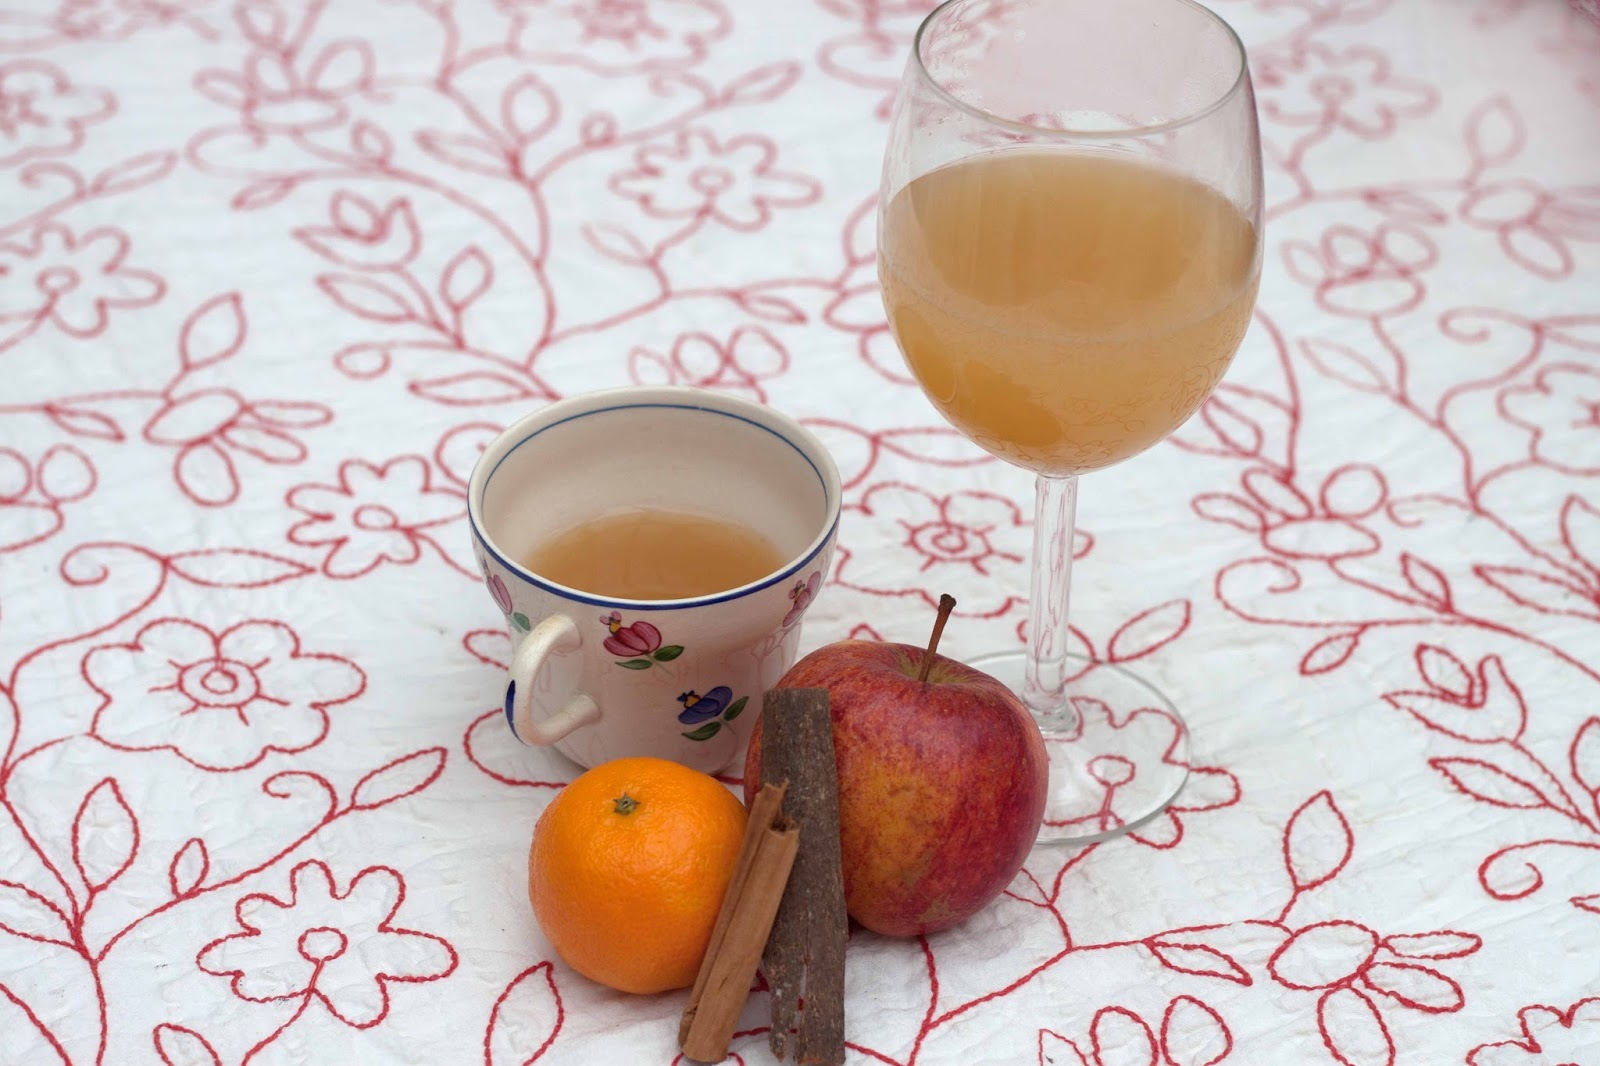 FOOD: THE EASY HOT SPICED APPLE DRINK